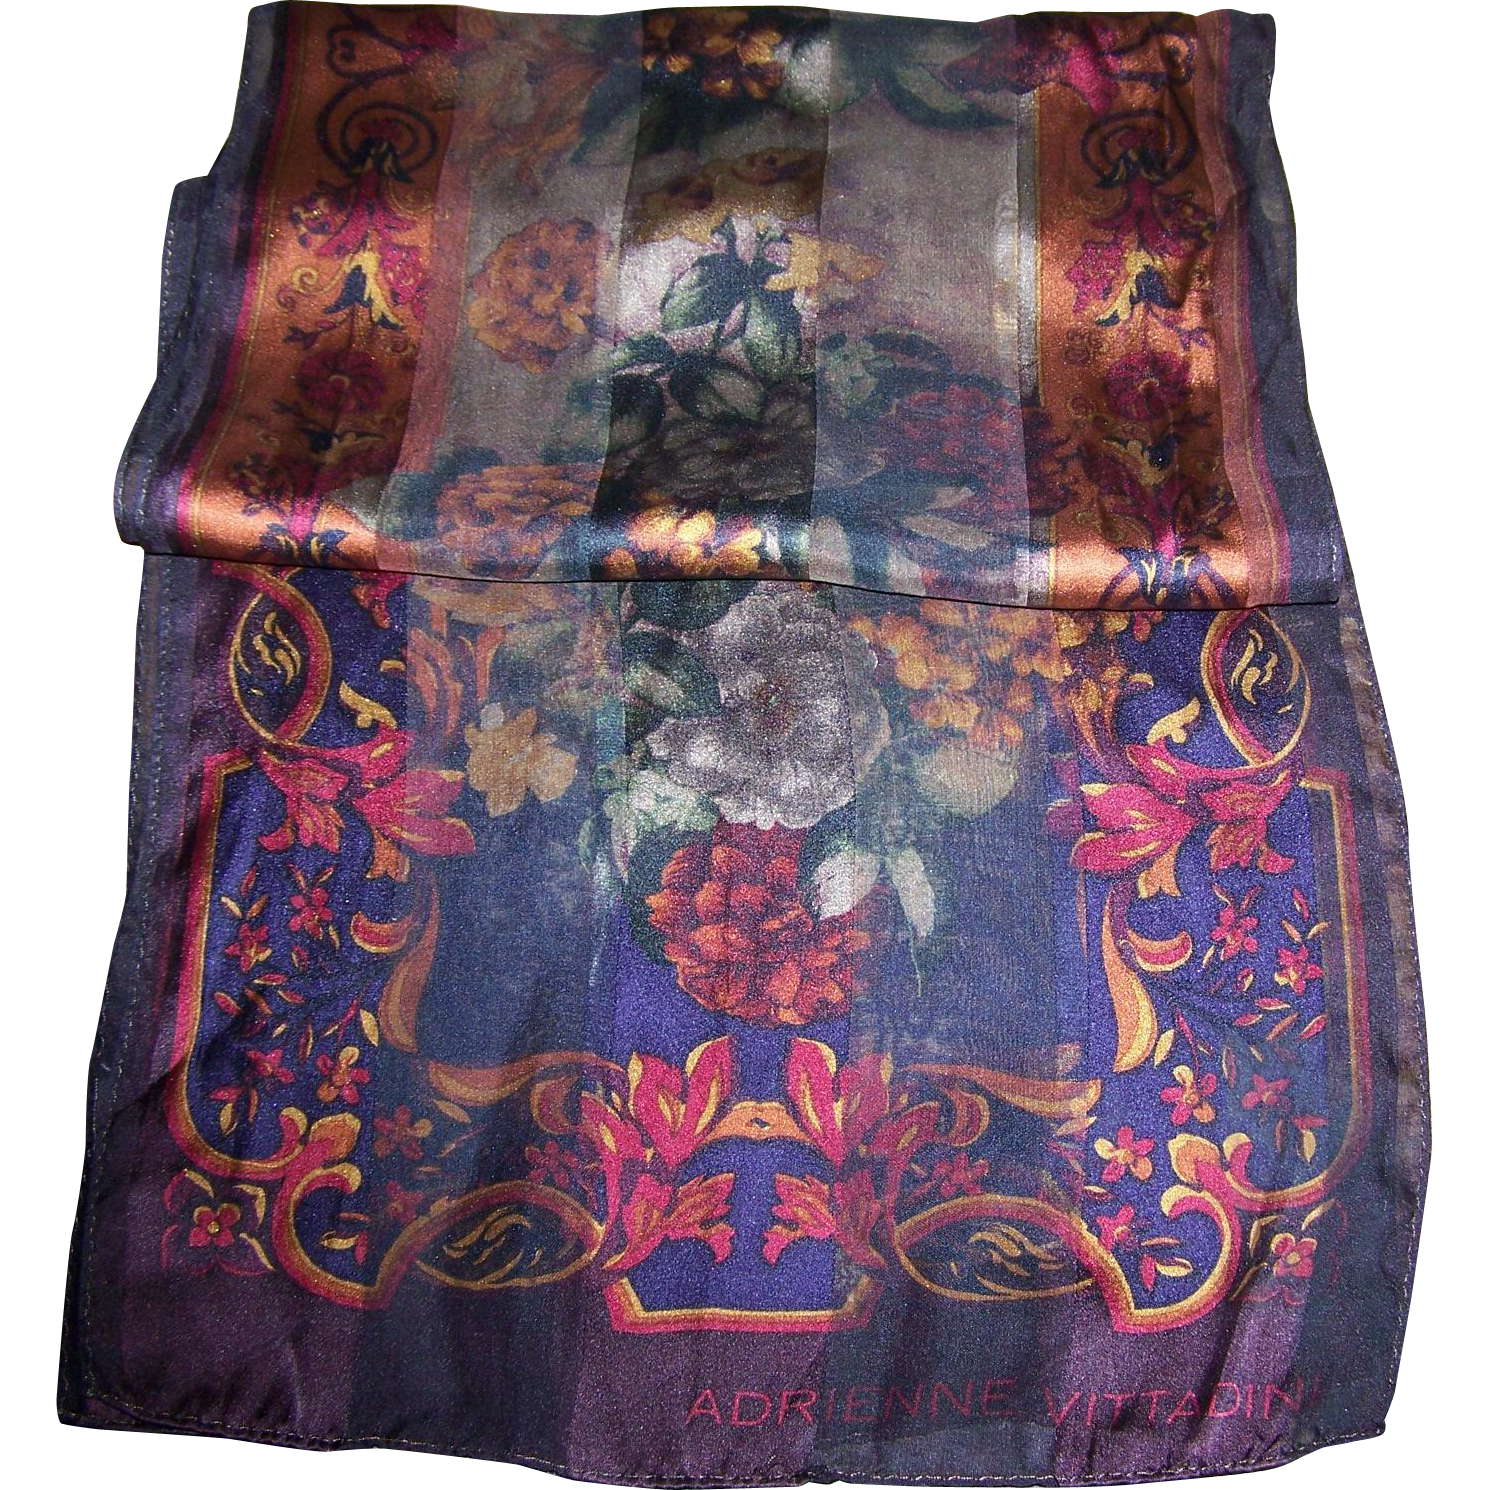 Lovely Long Rectangular Designer Signed Adrienne Vitadini Floral Scarf Fall Colors Sheer Panels